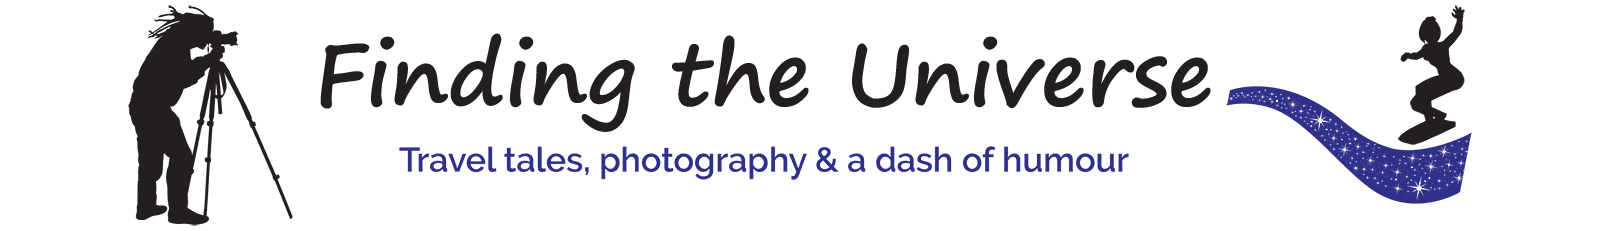 Finding the Universe Photography Travel Blog - travel tips, ideas, beautiful images and advice